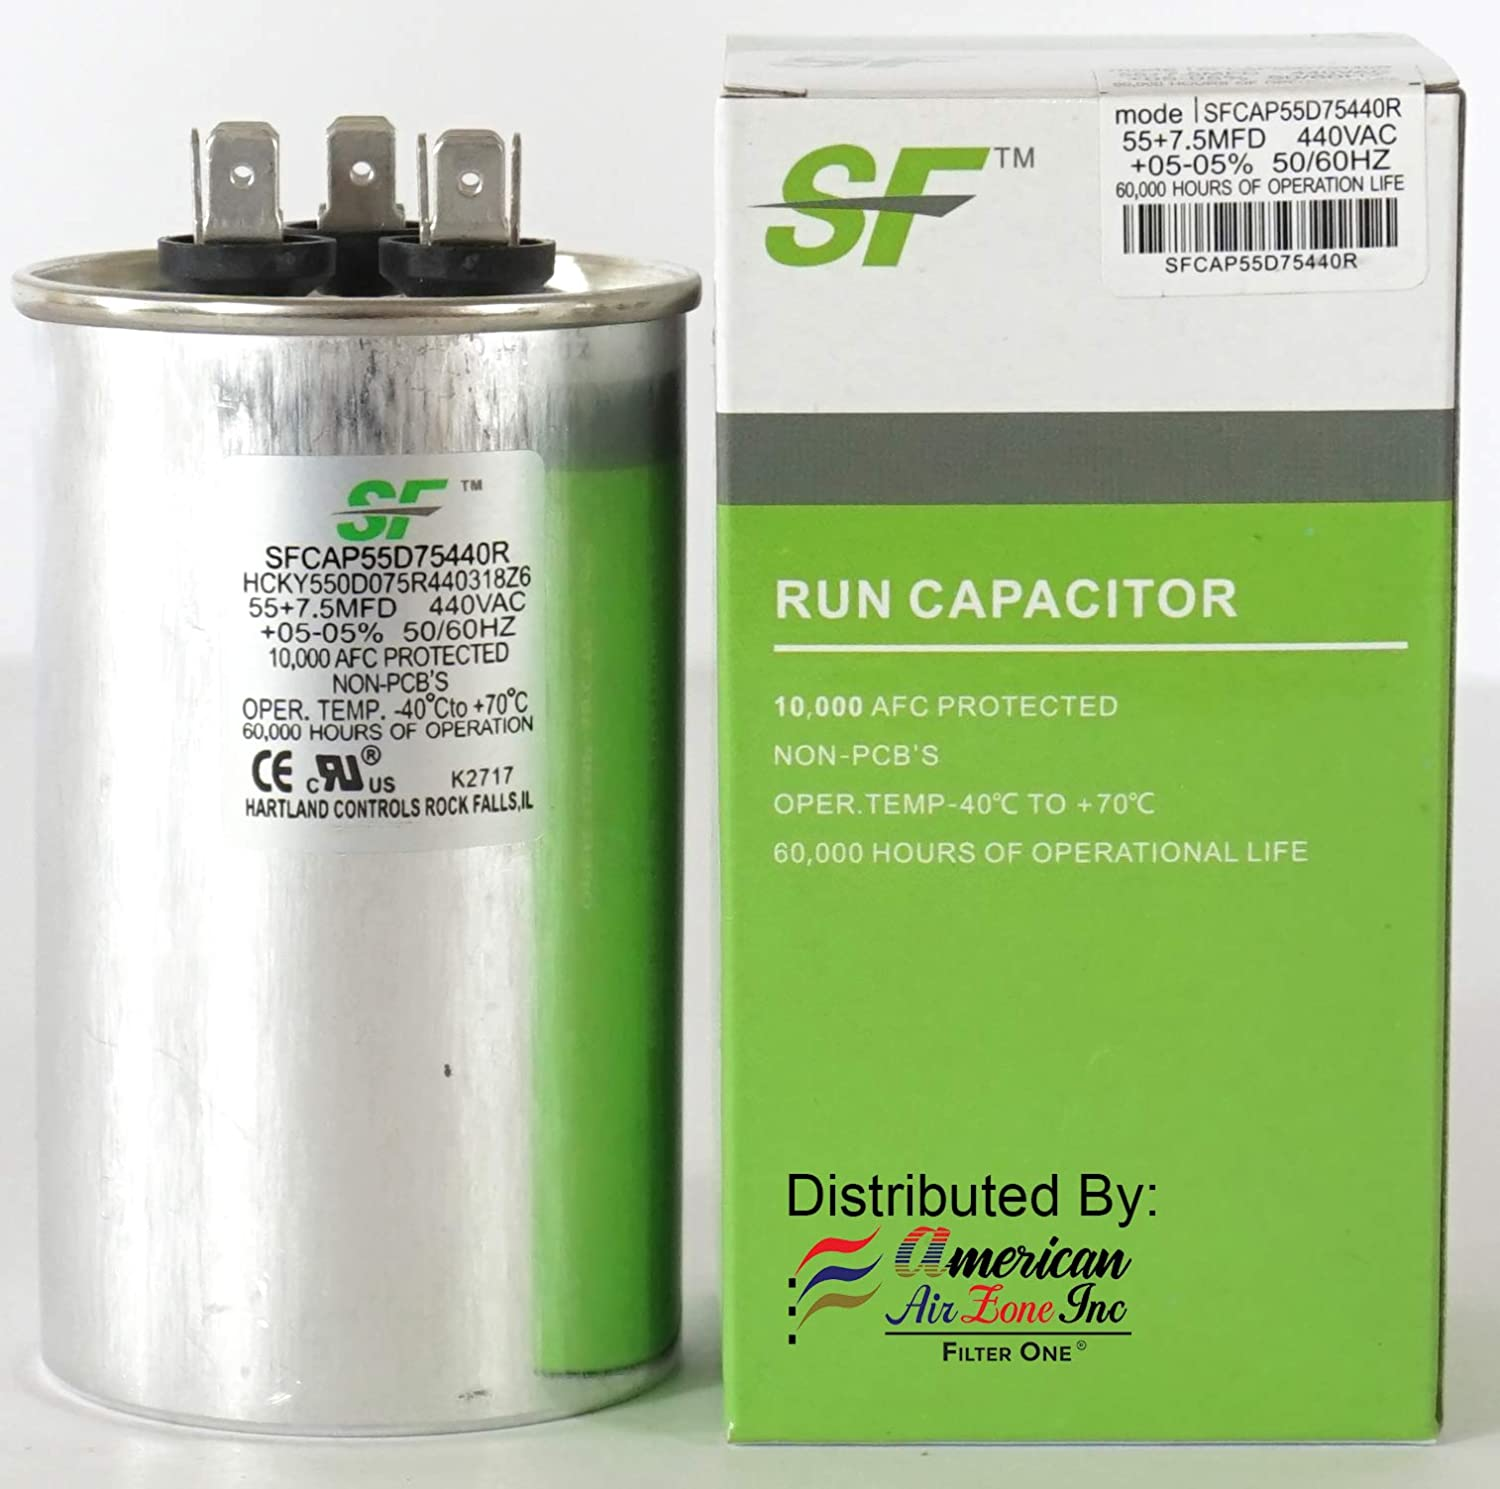 1-Pack Fans or AC Compressors 370//440 Volts Dual Run Capacitor-Round MicroFarad for AC Motors Replaces other Brands Capacitors TRANE SF 60+7.5 MFD /μF